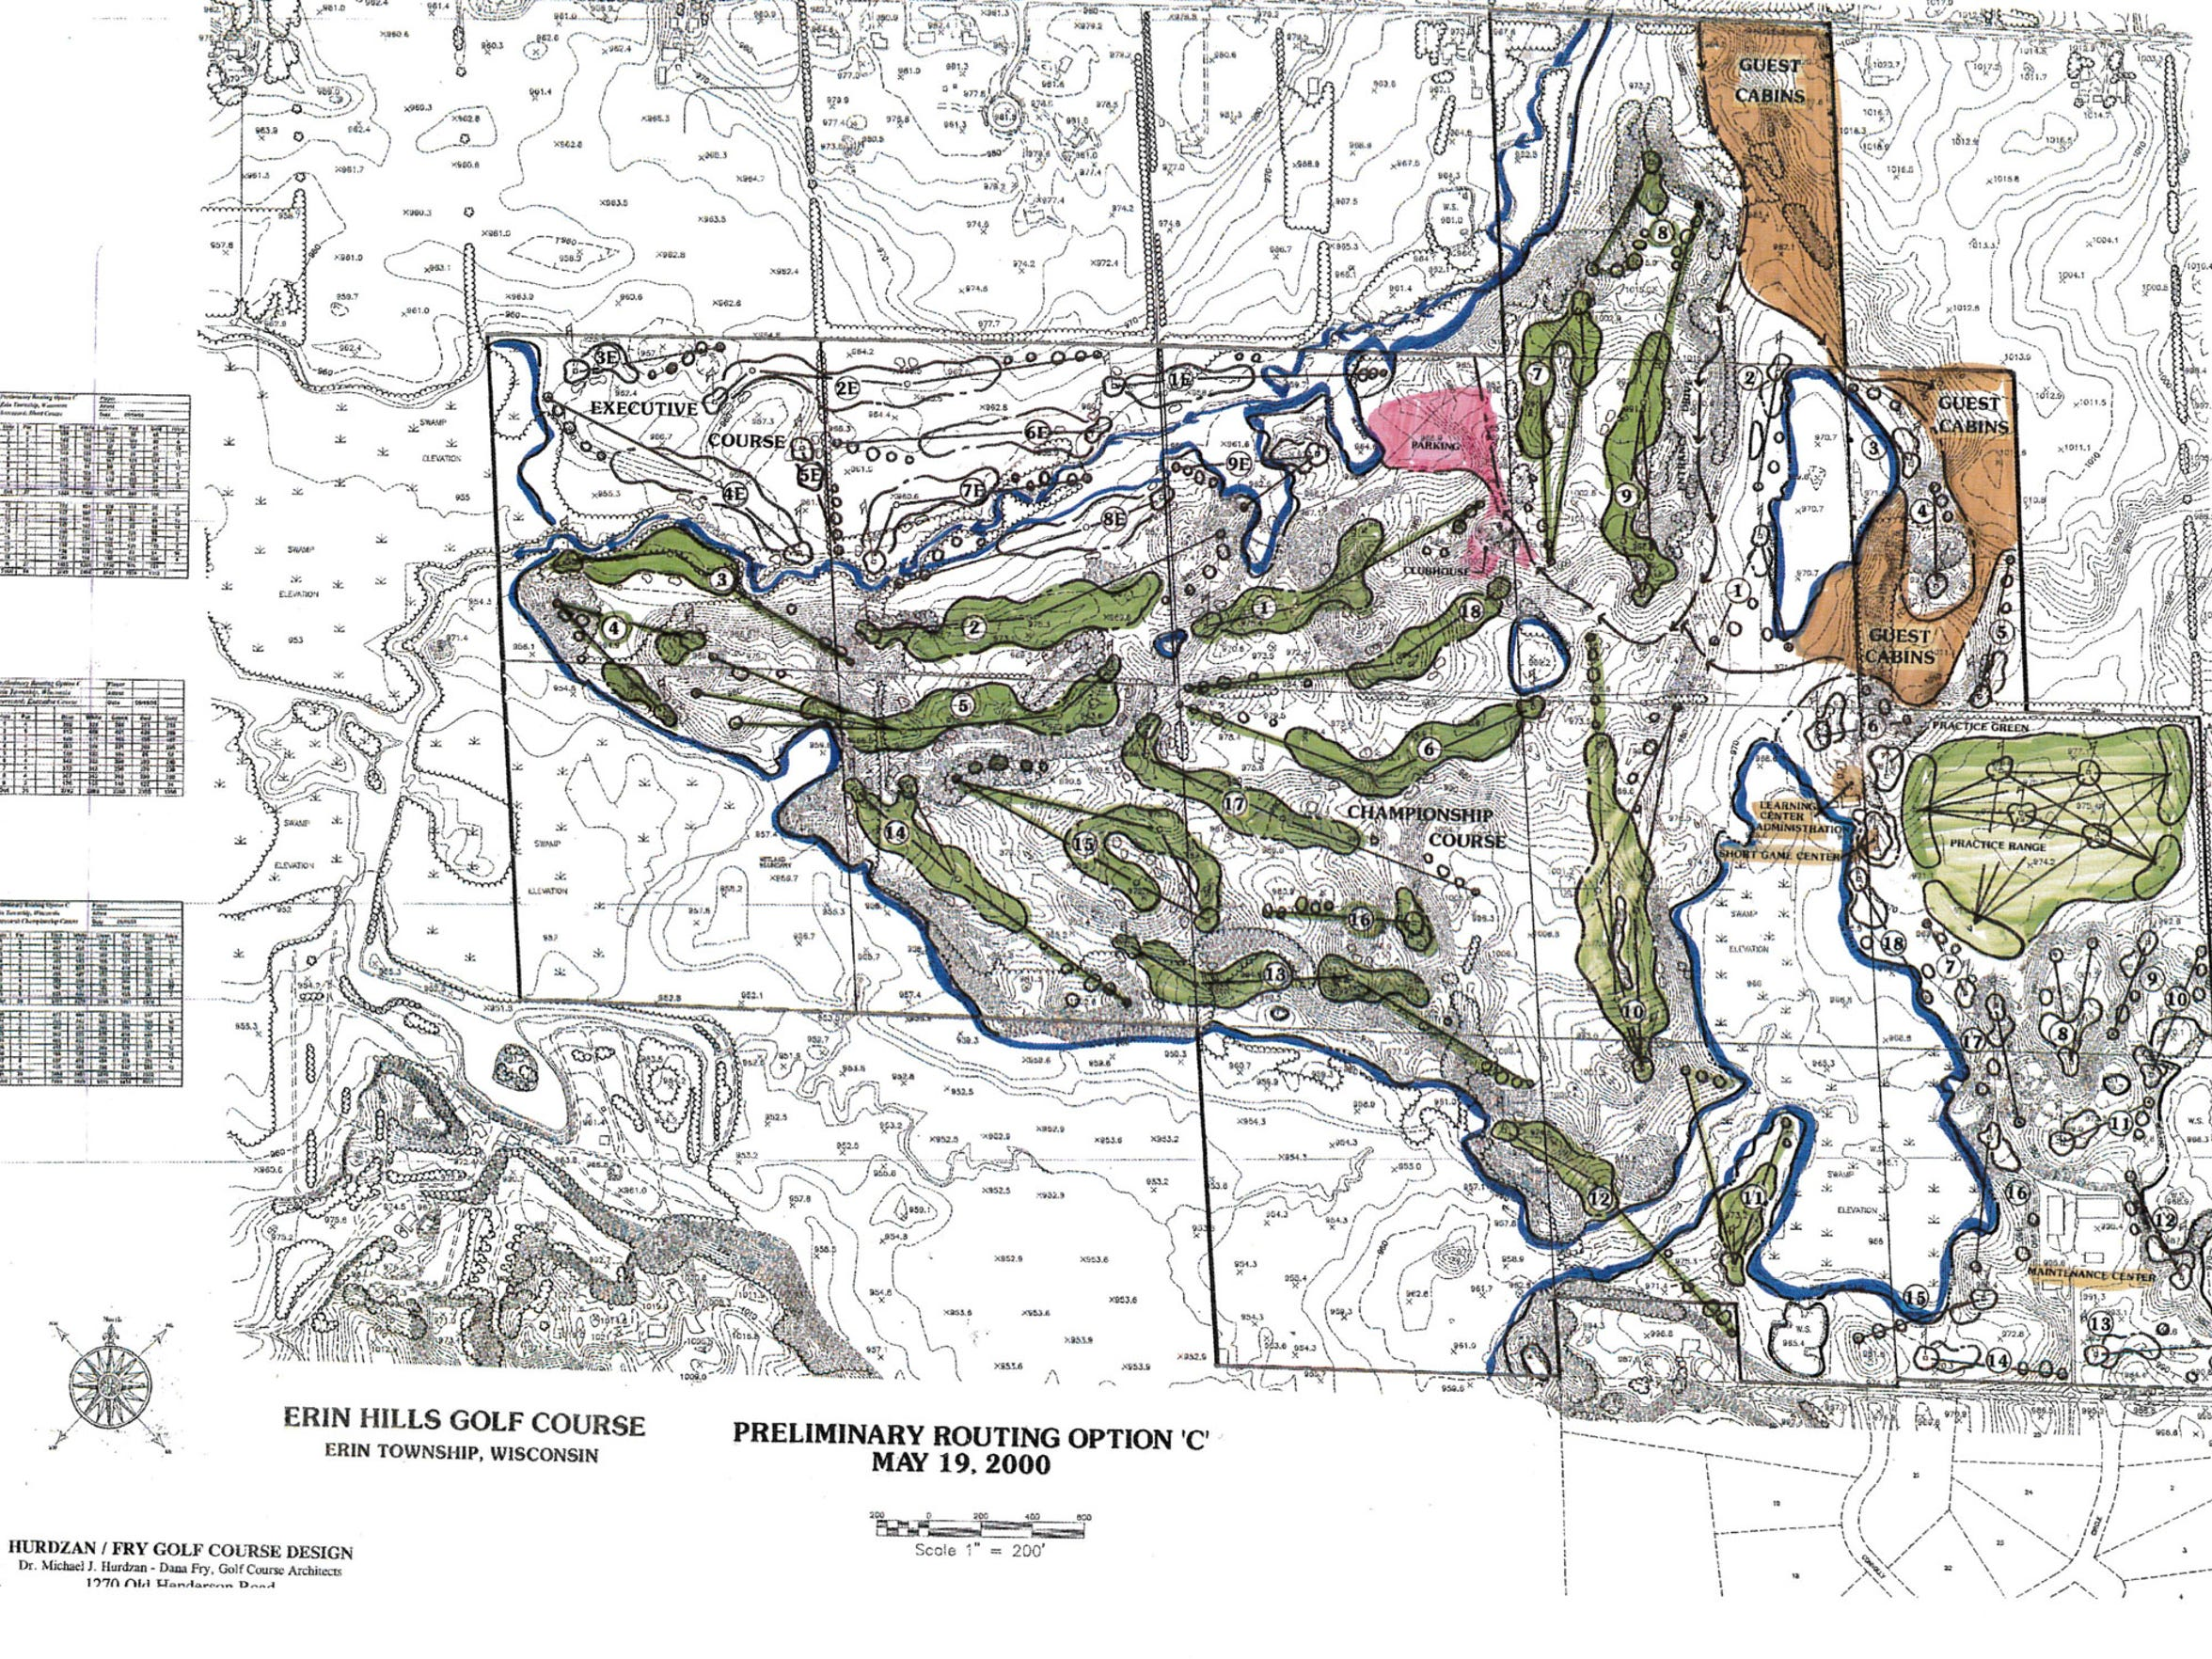 This was a circa 2000 routing of Erin Hills by Hurdzan-Fry-Whitten. The course underwent many re-routings after this.